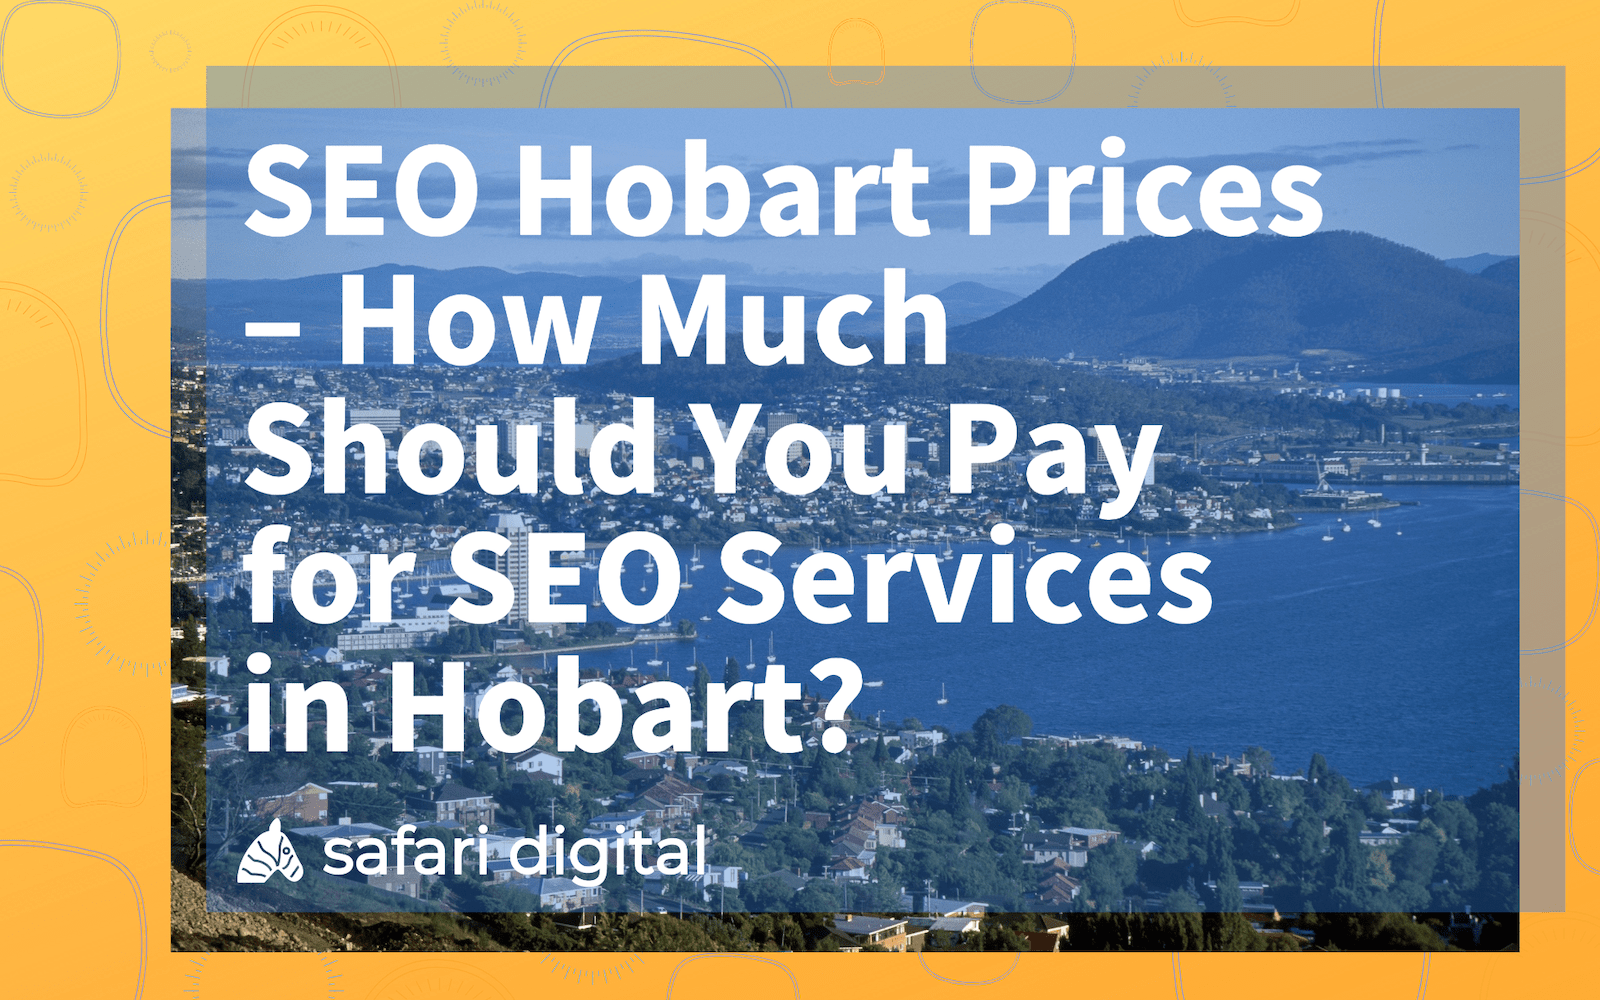 seo hobart prices large cover image